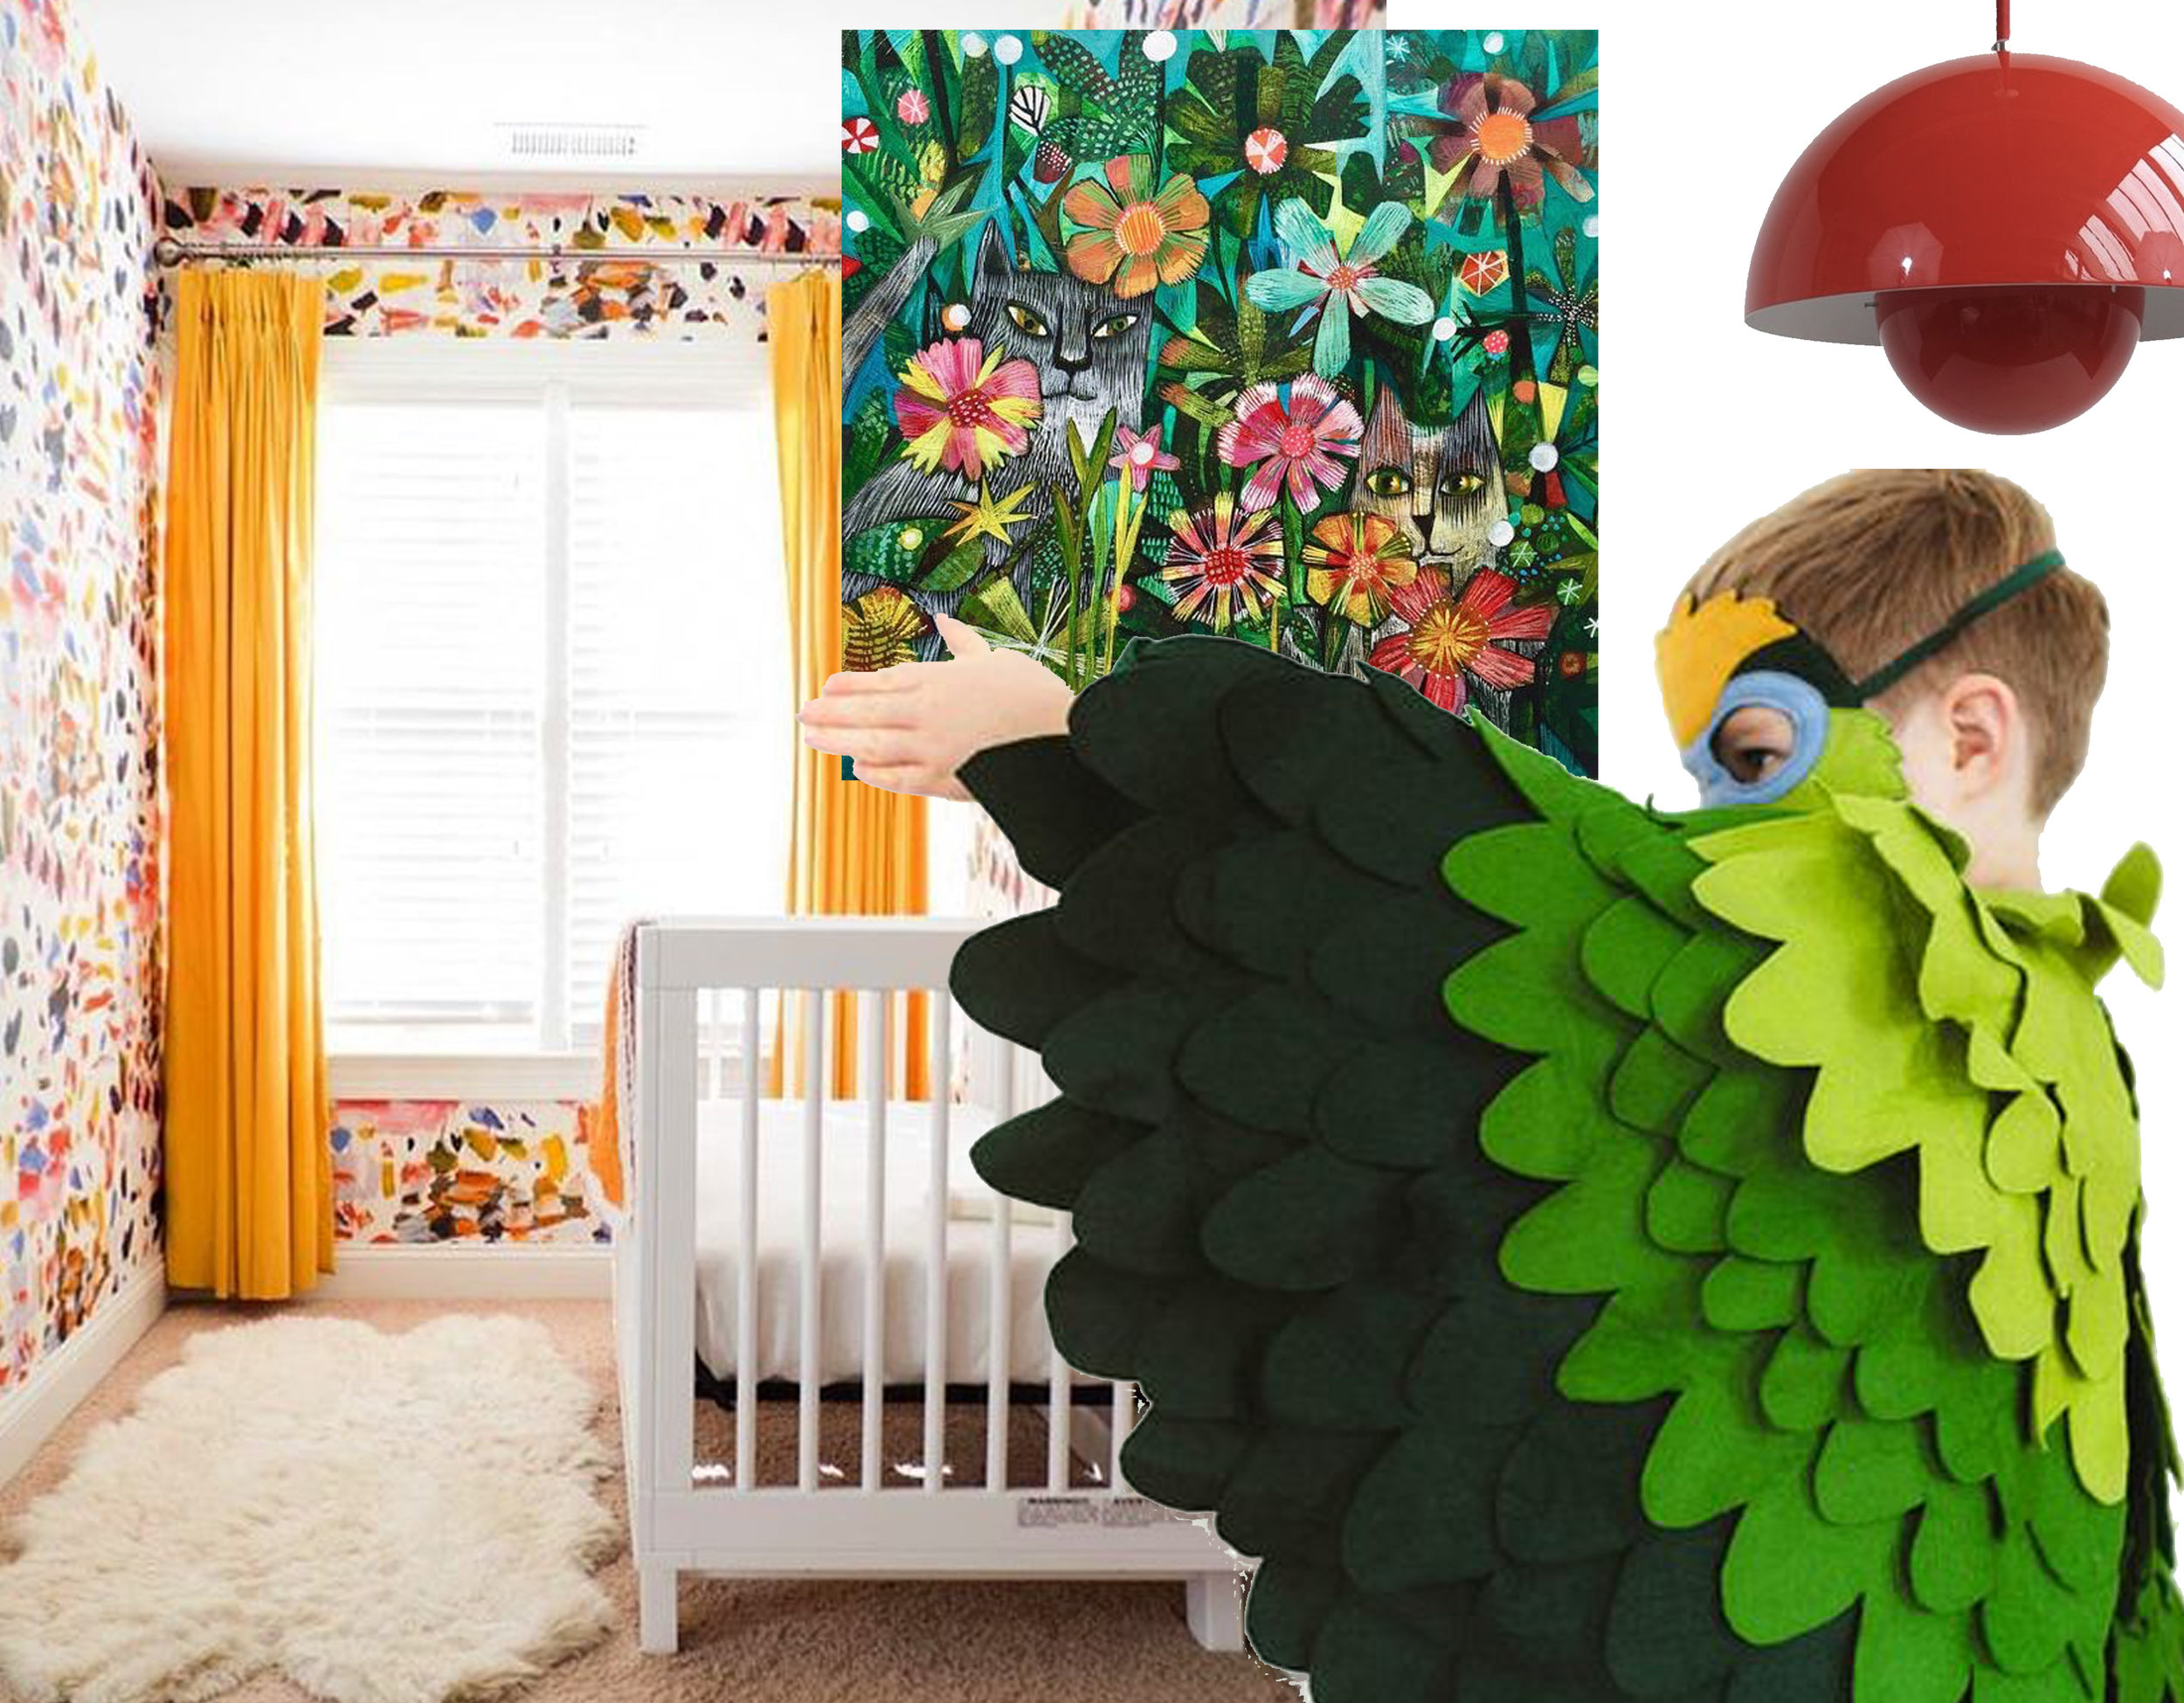 Arty wallpaper in kids'room  Pierre Frey  via I nstagram - colorful print  EsteMacLeod Design  - Parrot Costume  BHBKidstyle